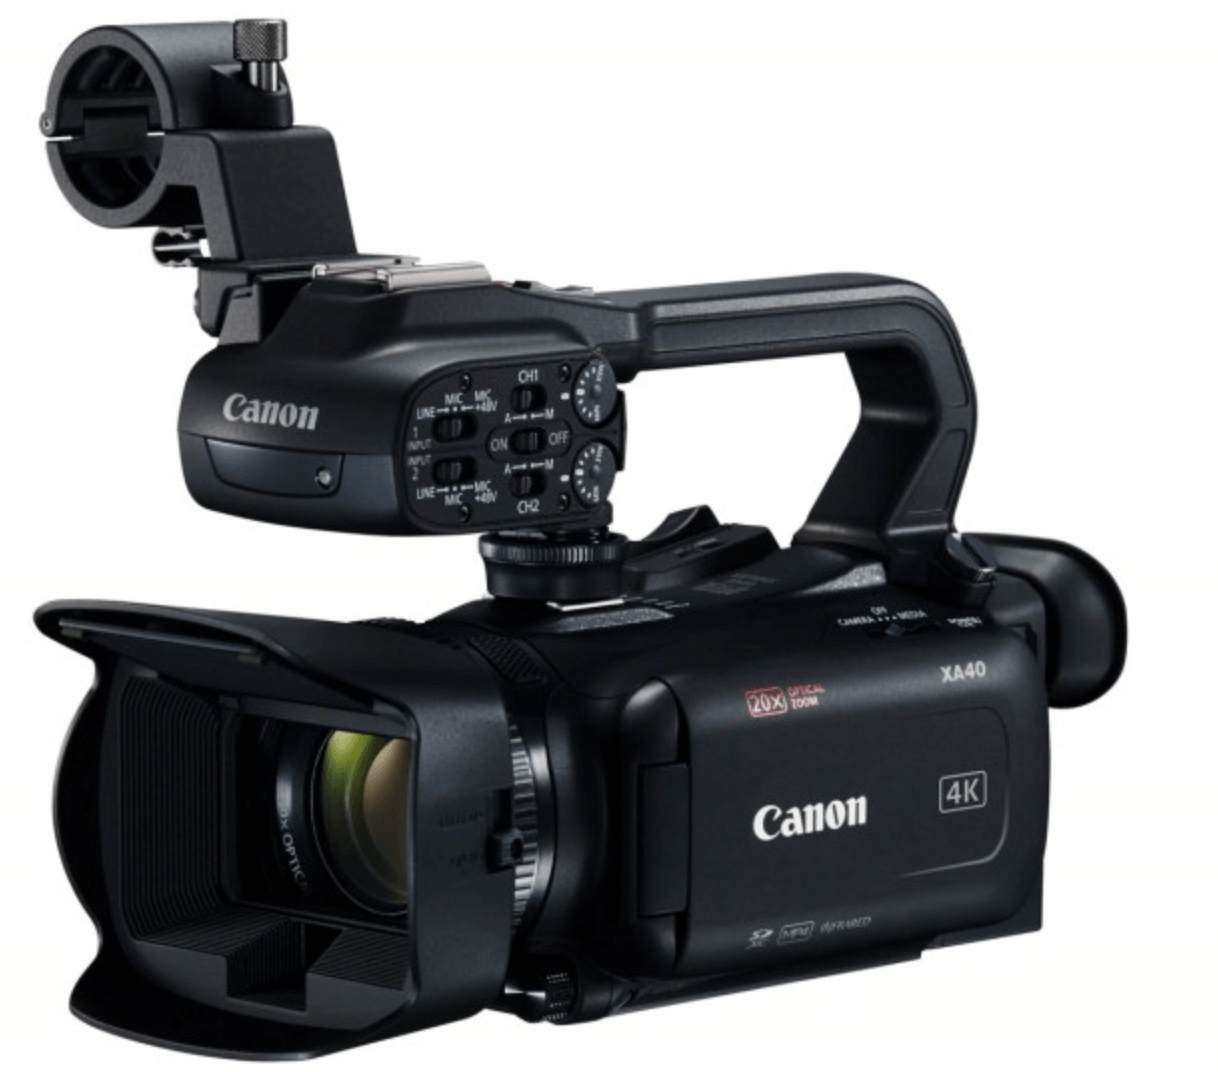 Canon AX40 Hire - Fusion Sound & Light